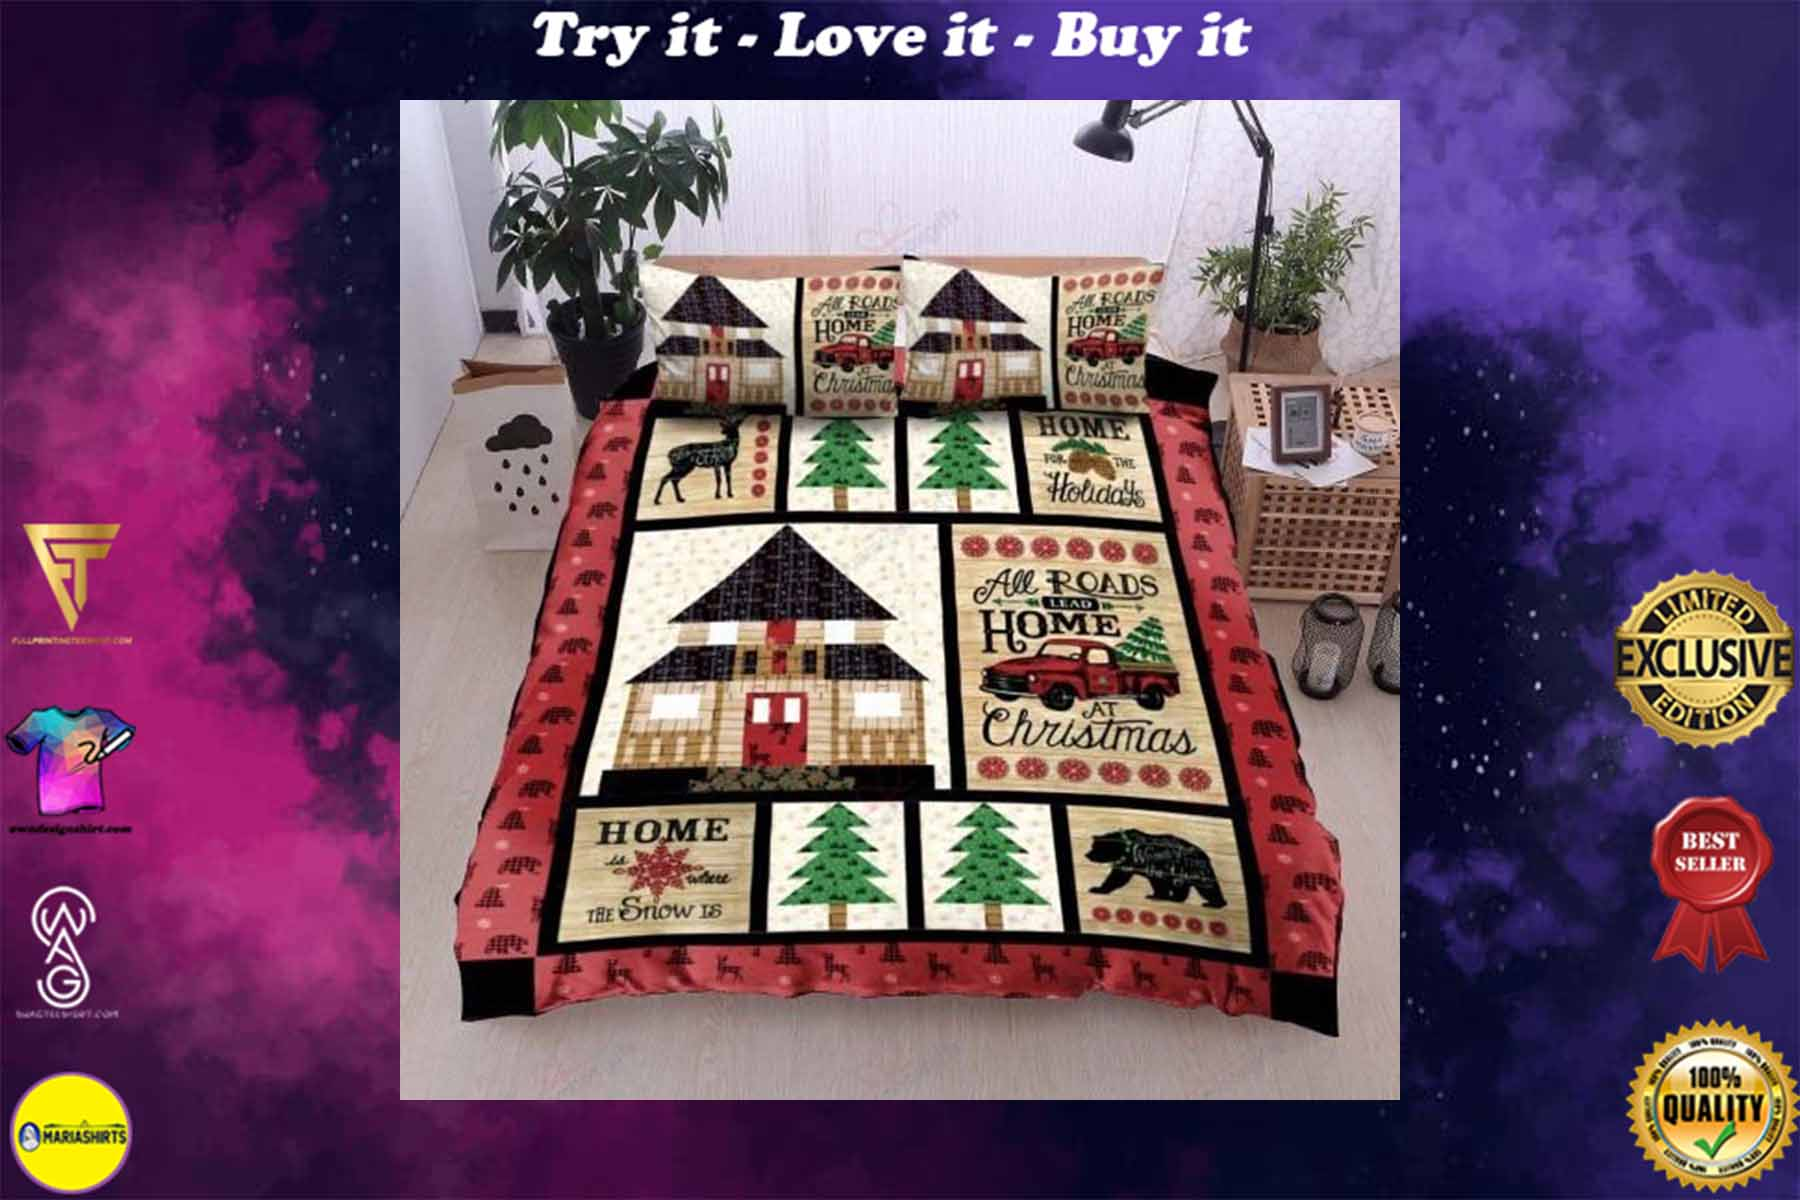 all roads lead home at christmas bedding set